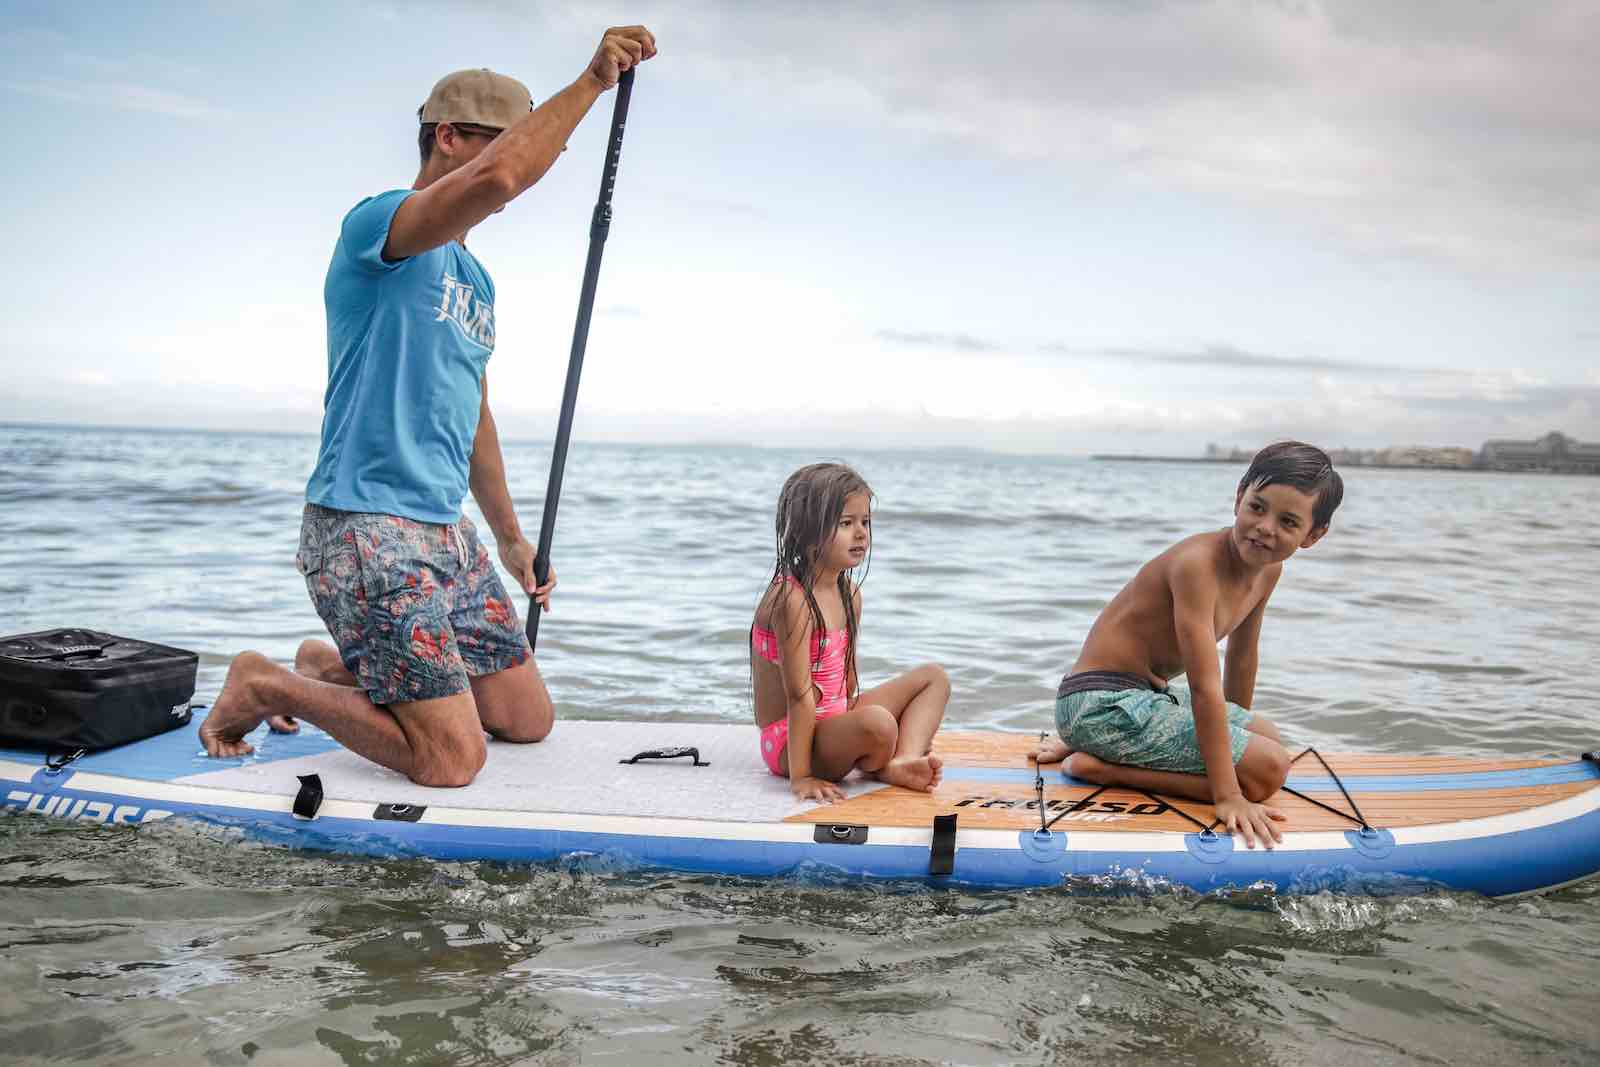 Boards with Full-length Stand Up Paddleboard Deck Pads: Why You Need One!